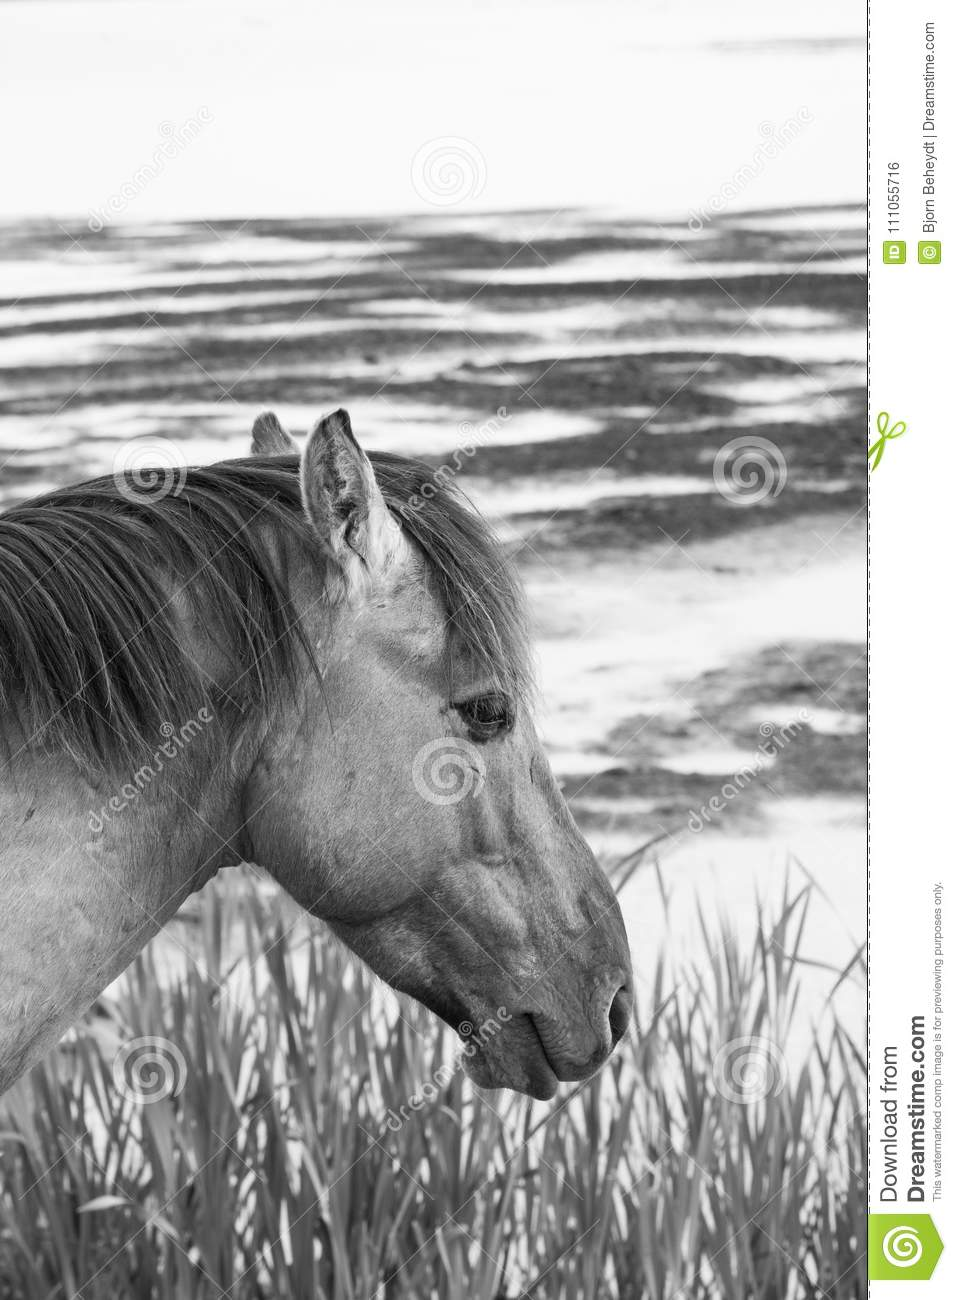 European Wild Horses In Black And White Stock Photo Image Of Beautiful Color 111055716